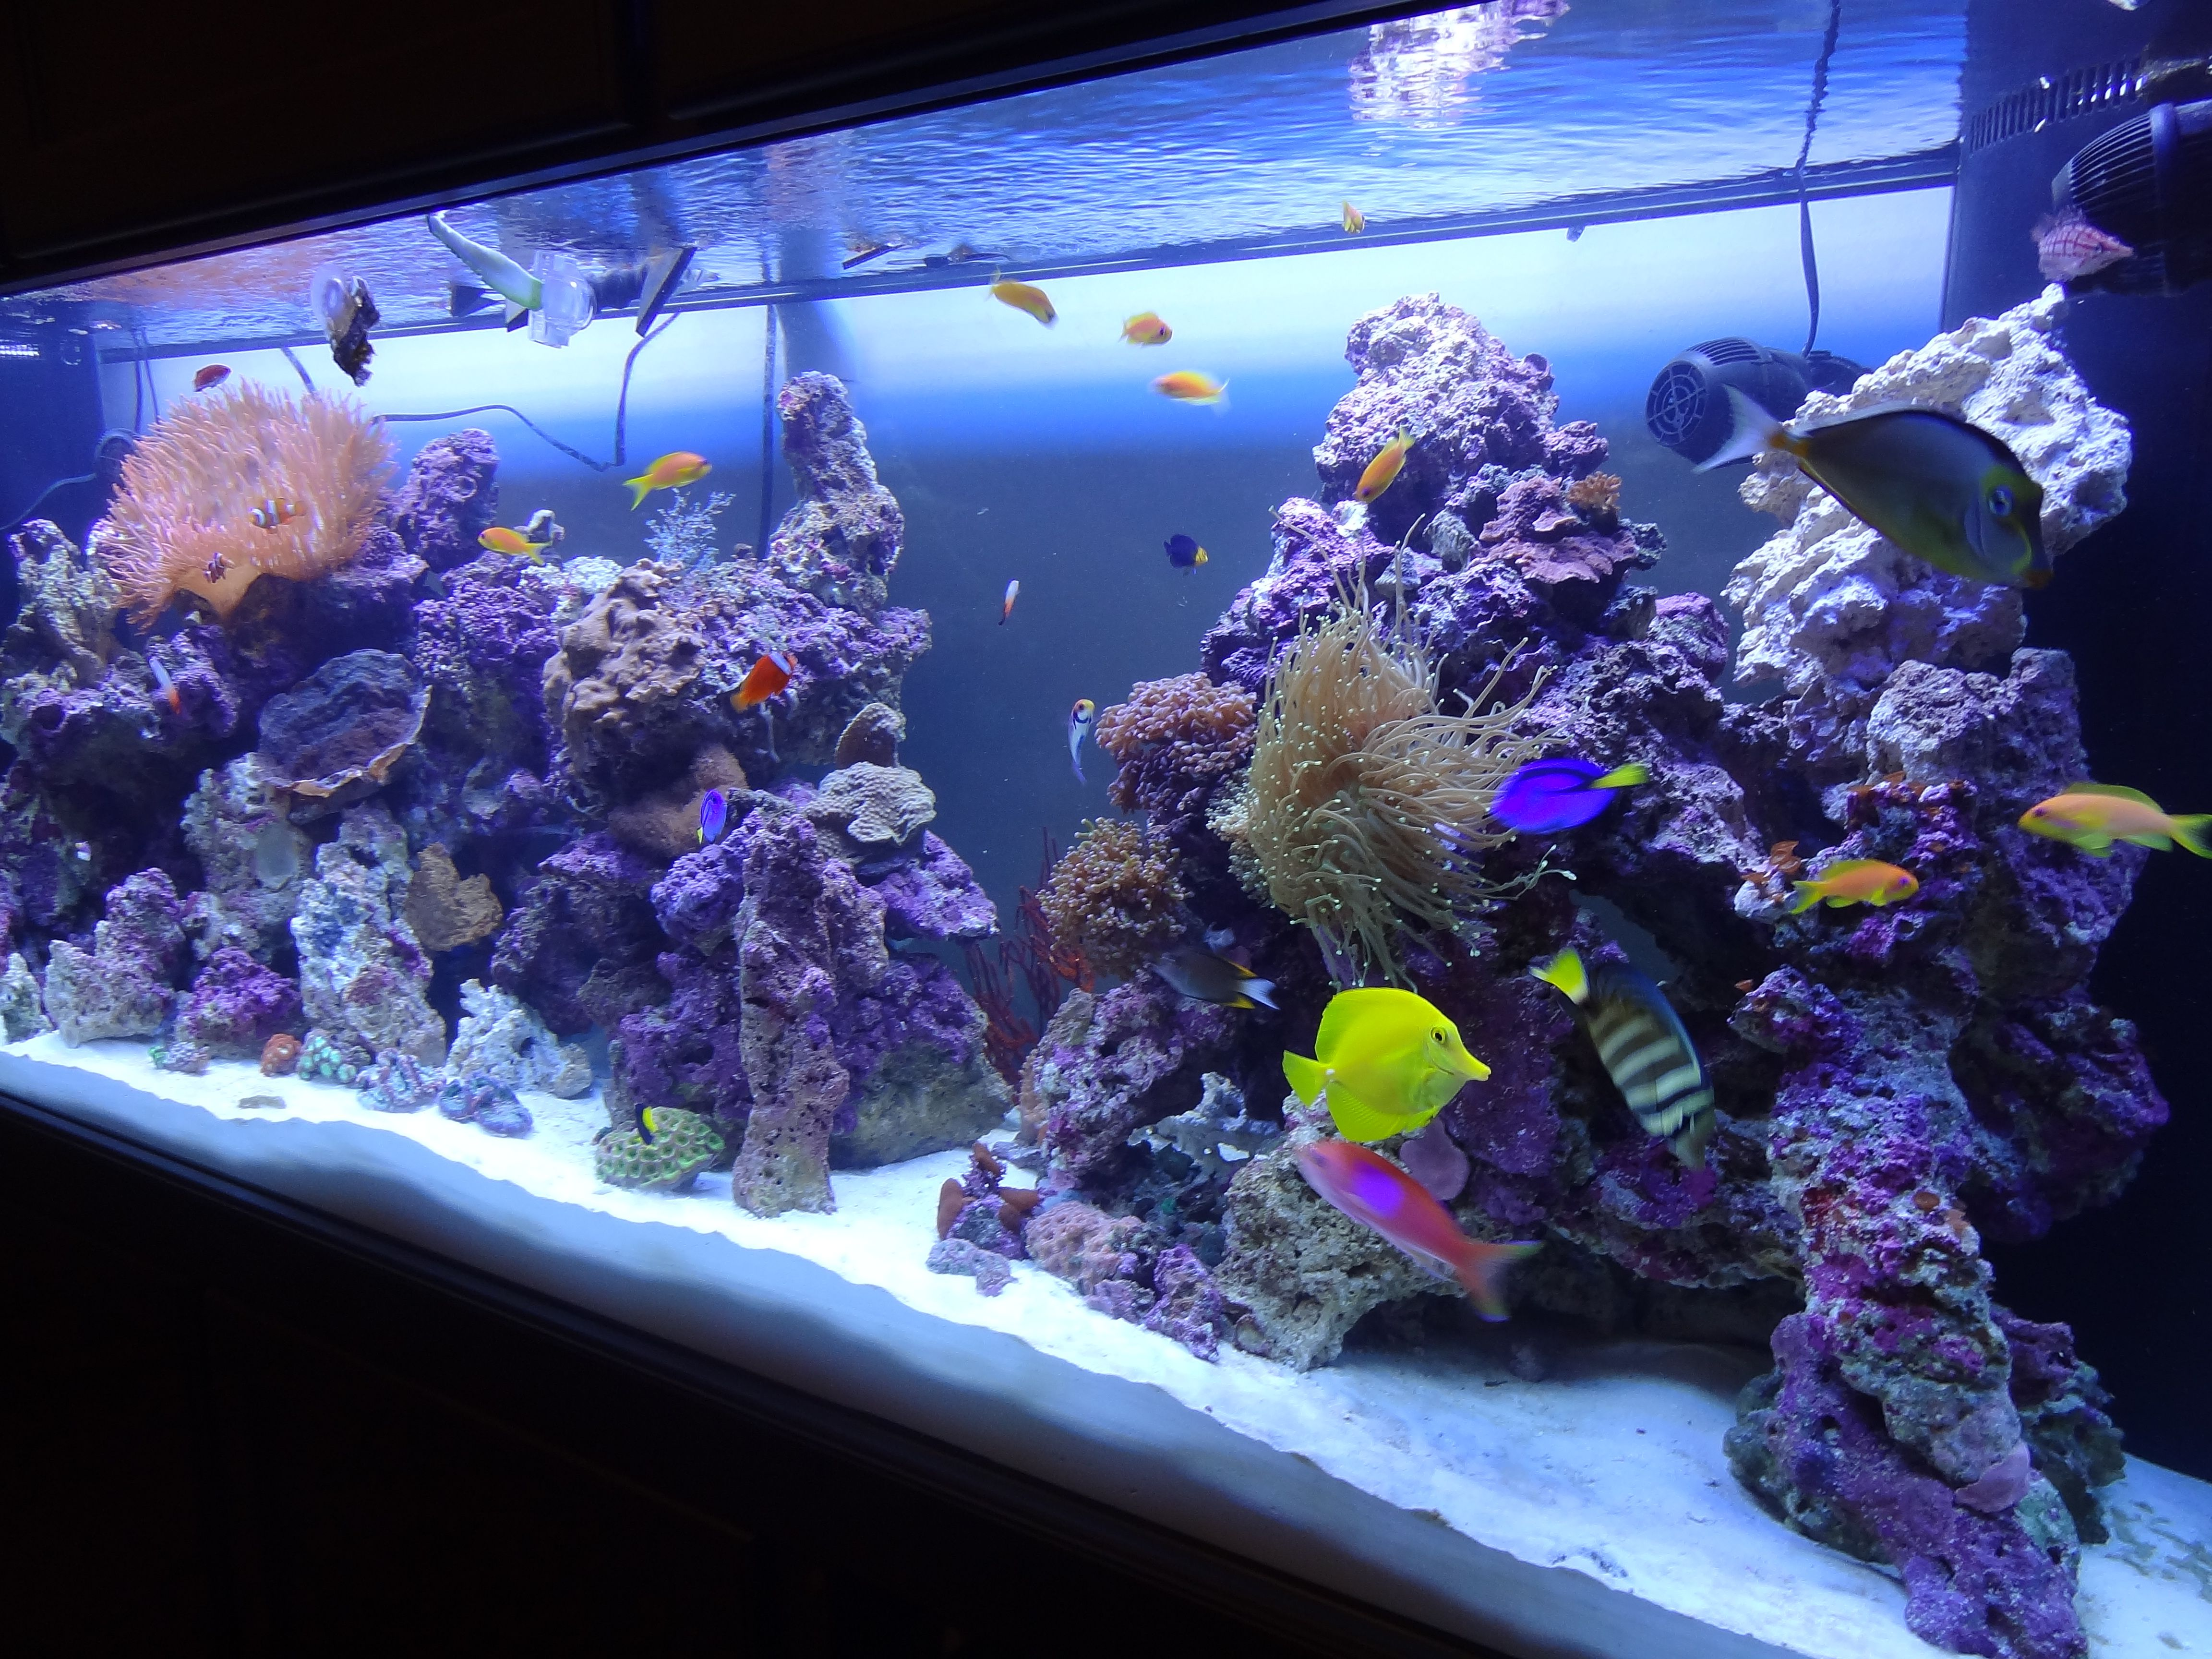 265 gallon salt water reef aquarium salt water reef for Saltwater fish tank